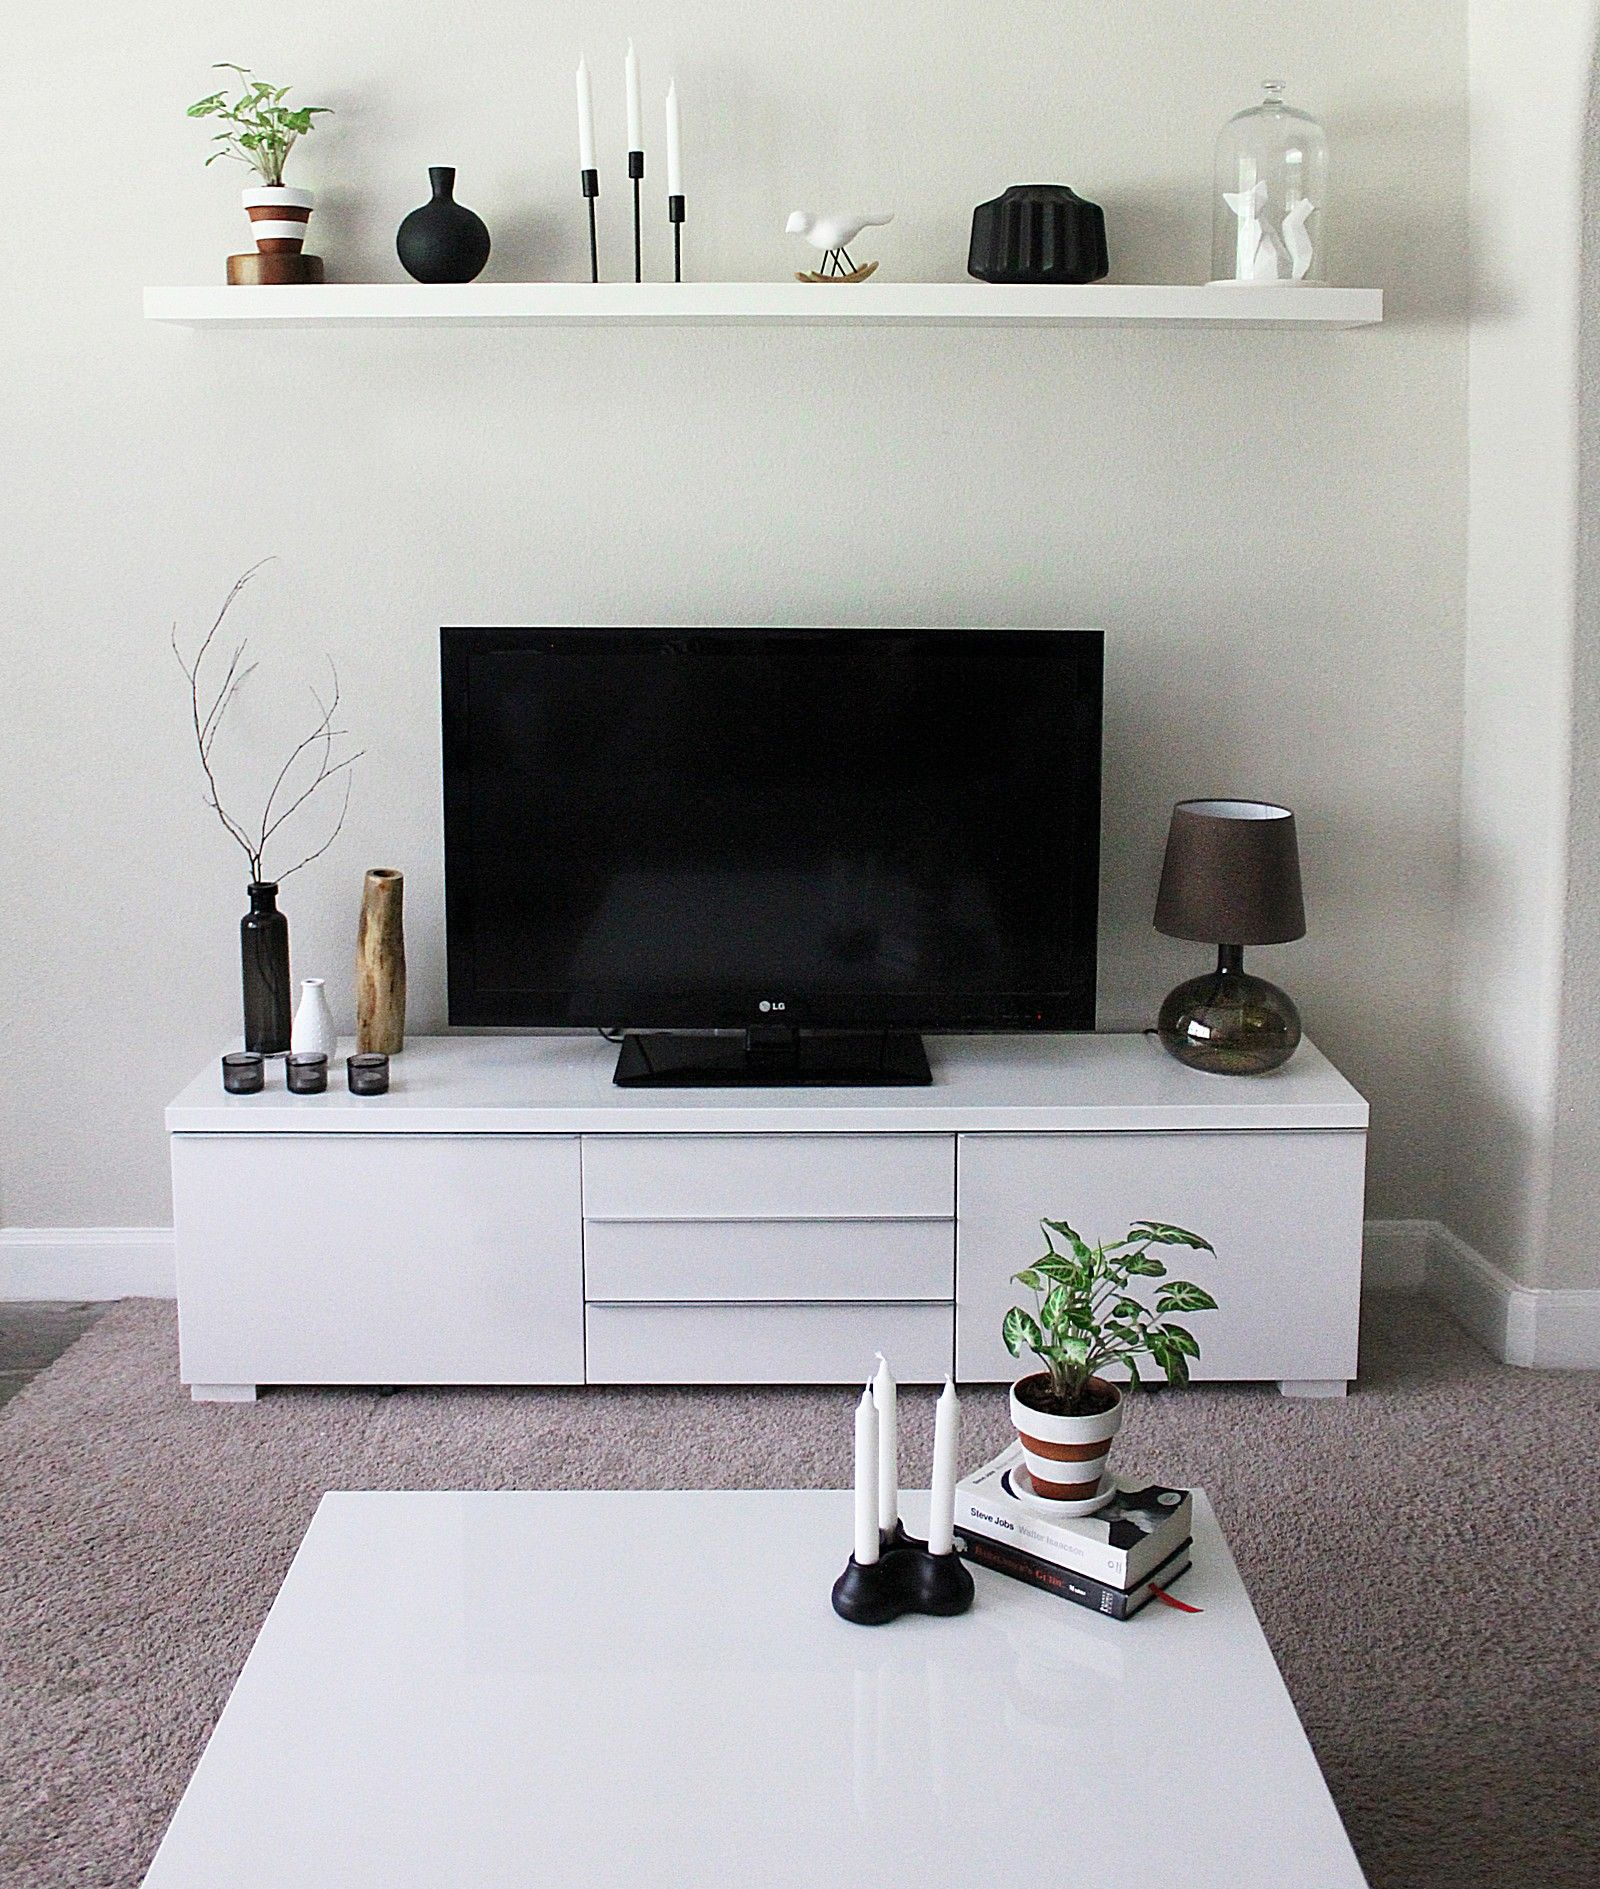 Minimalist Tv Stand And Cabinet Ikea Besta  Interiors Design Classy Furniture Design Living Room Inspiration Design